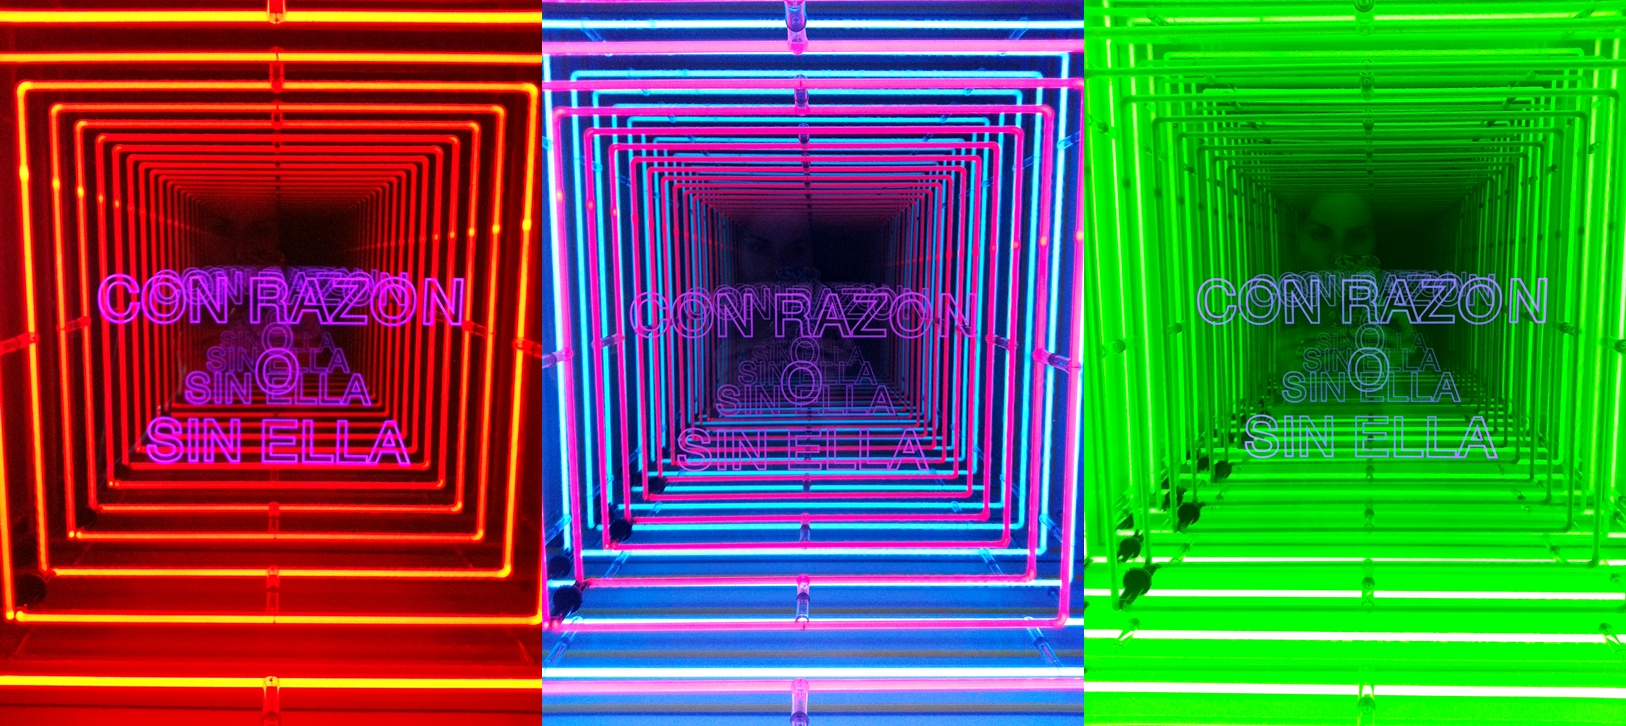 """This is one of Ivan Navarro's pieces in the exhibition """"Where's the Next War?"""" at the Galerie Daniel Templon in Paris. Each square is a different picture I took every time the neons inside changed colors. The words """"Con La Razon o Sin Ella"""" were taken from Goya."""